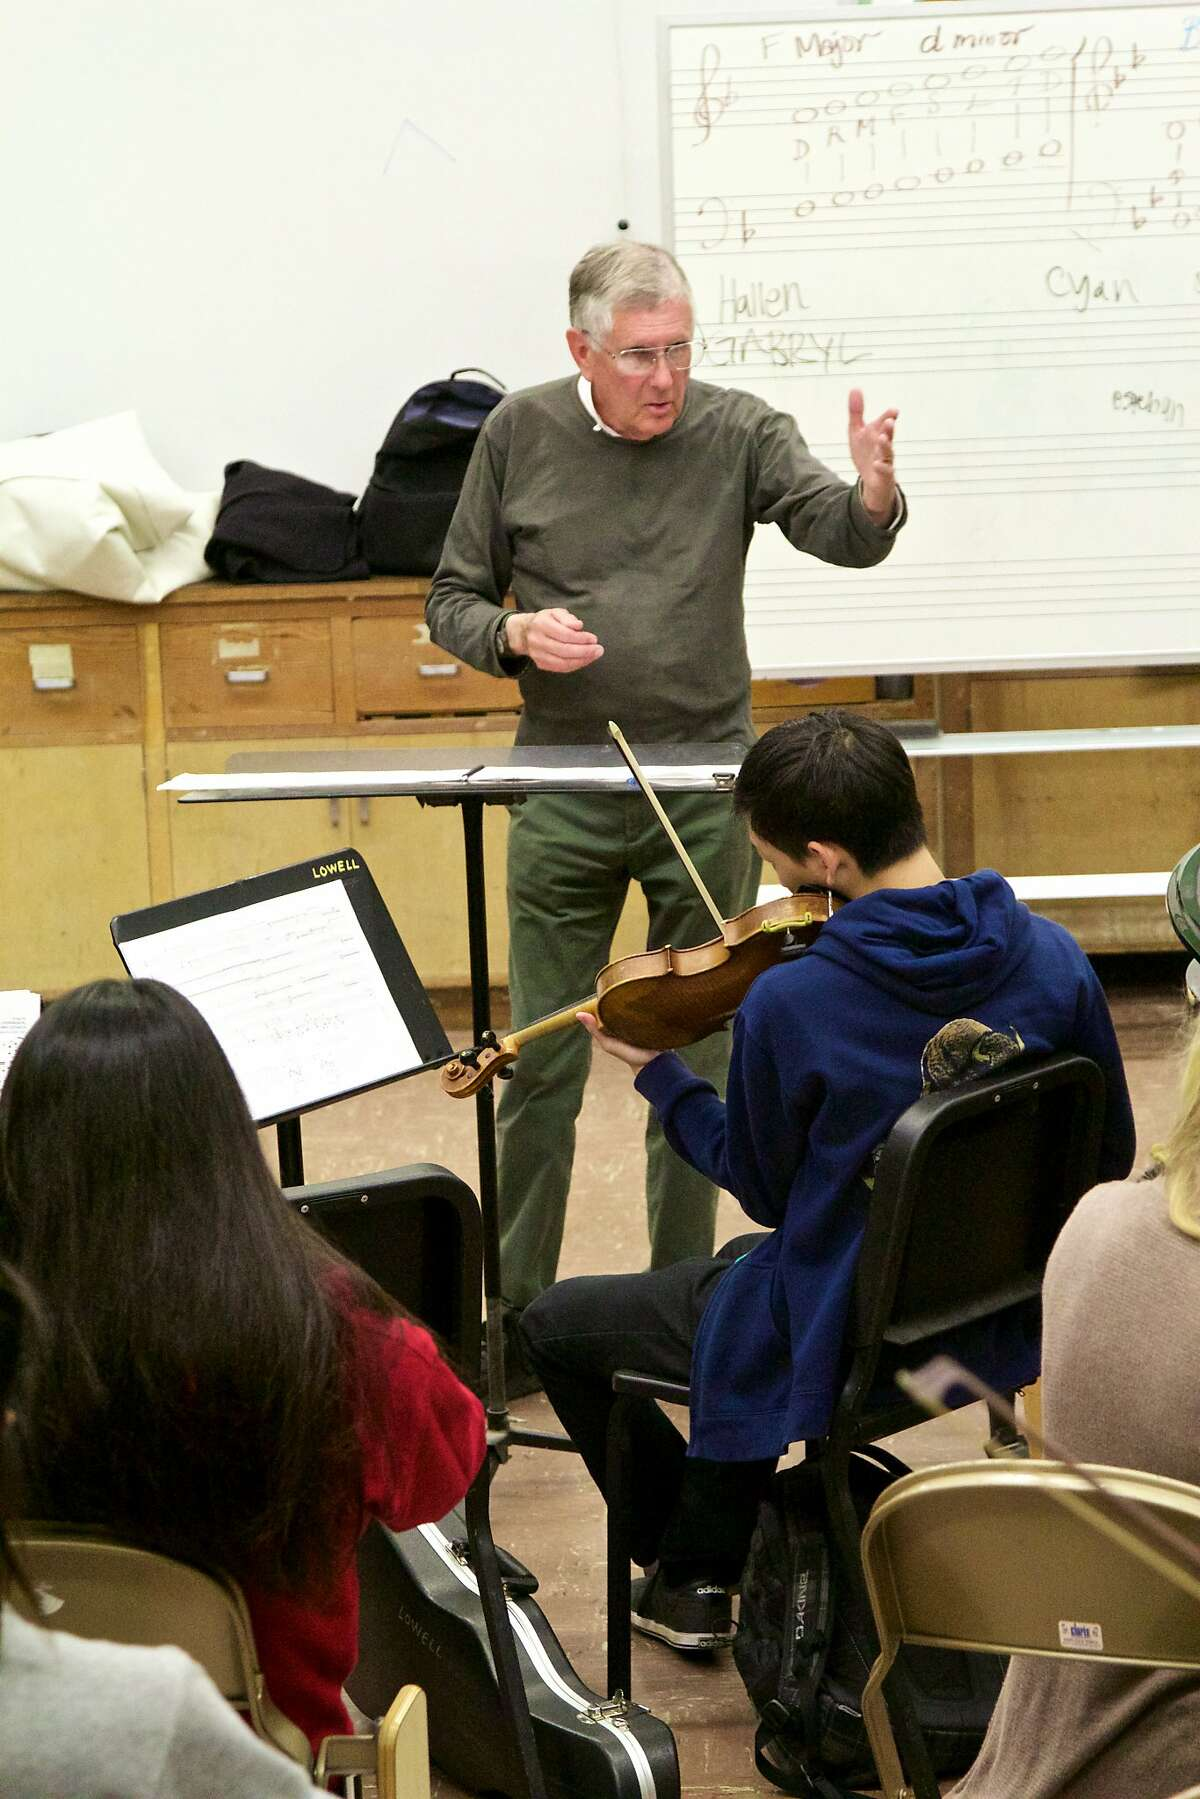 San Francisco composer Charles Boone rehearses his new commissioned piece with the Lowell High School string orchestra in advance of it premiere April 6.